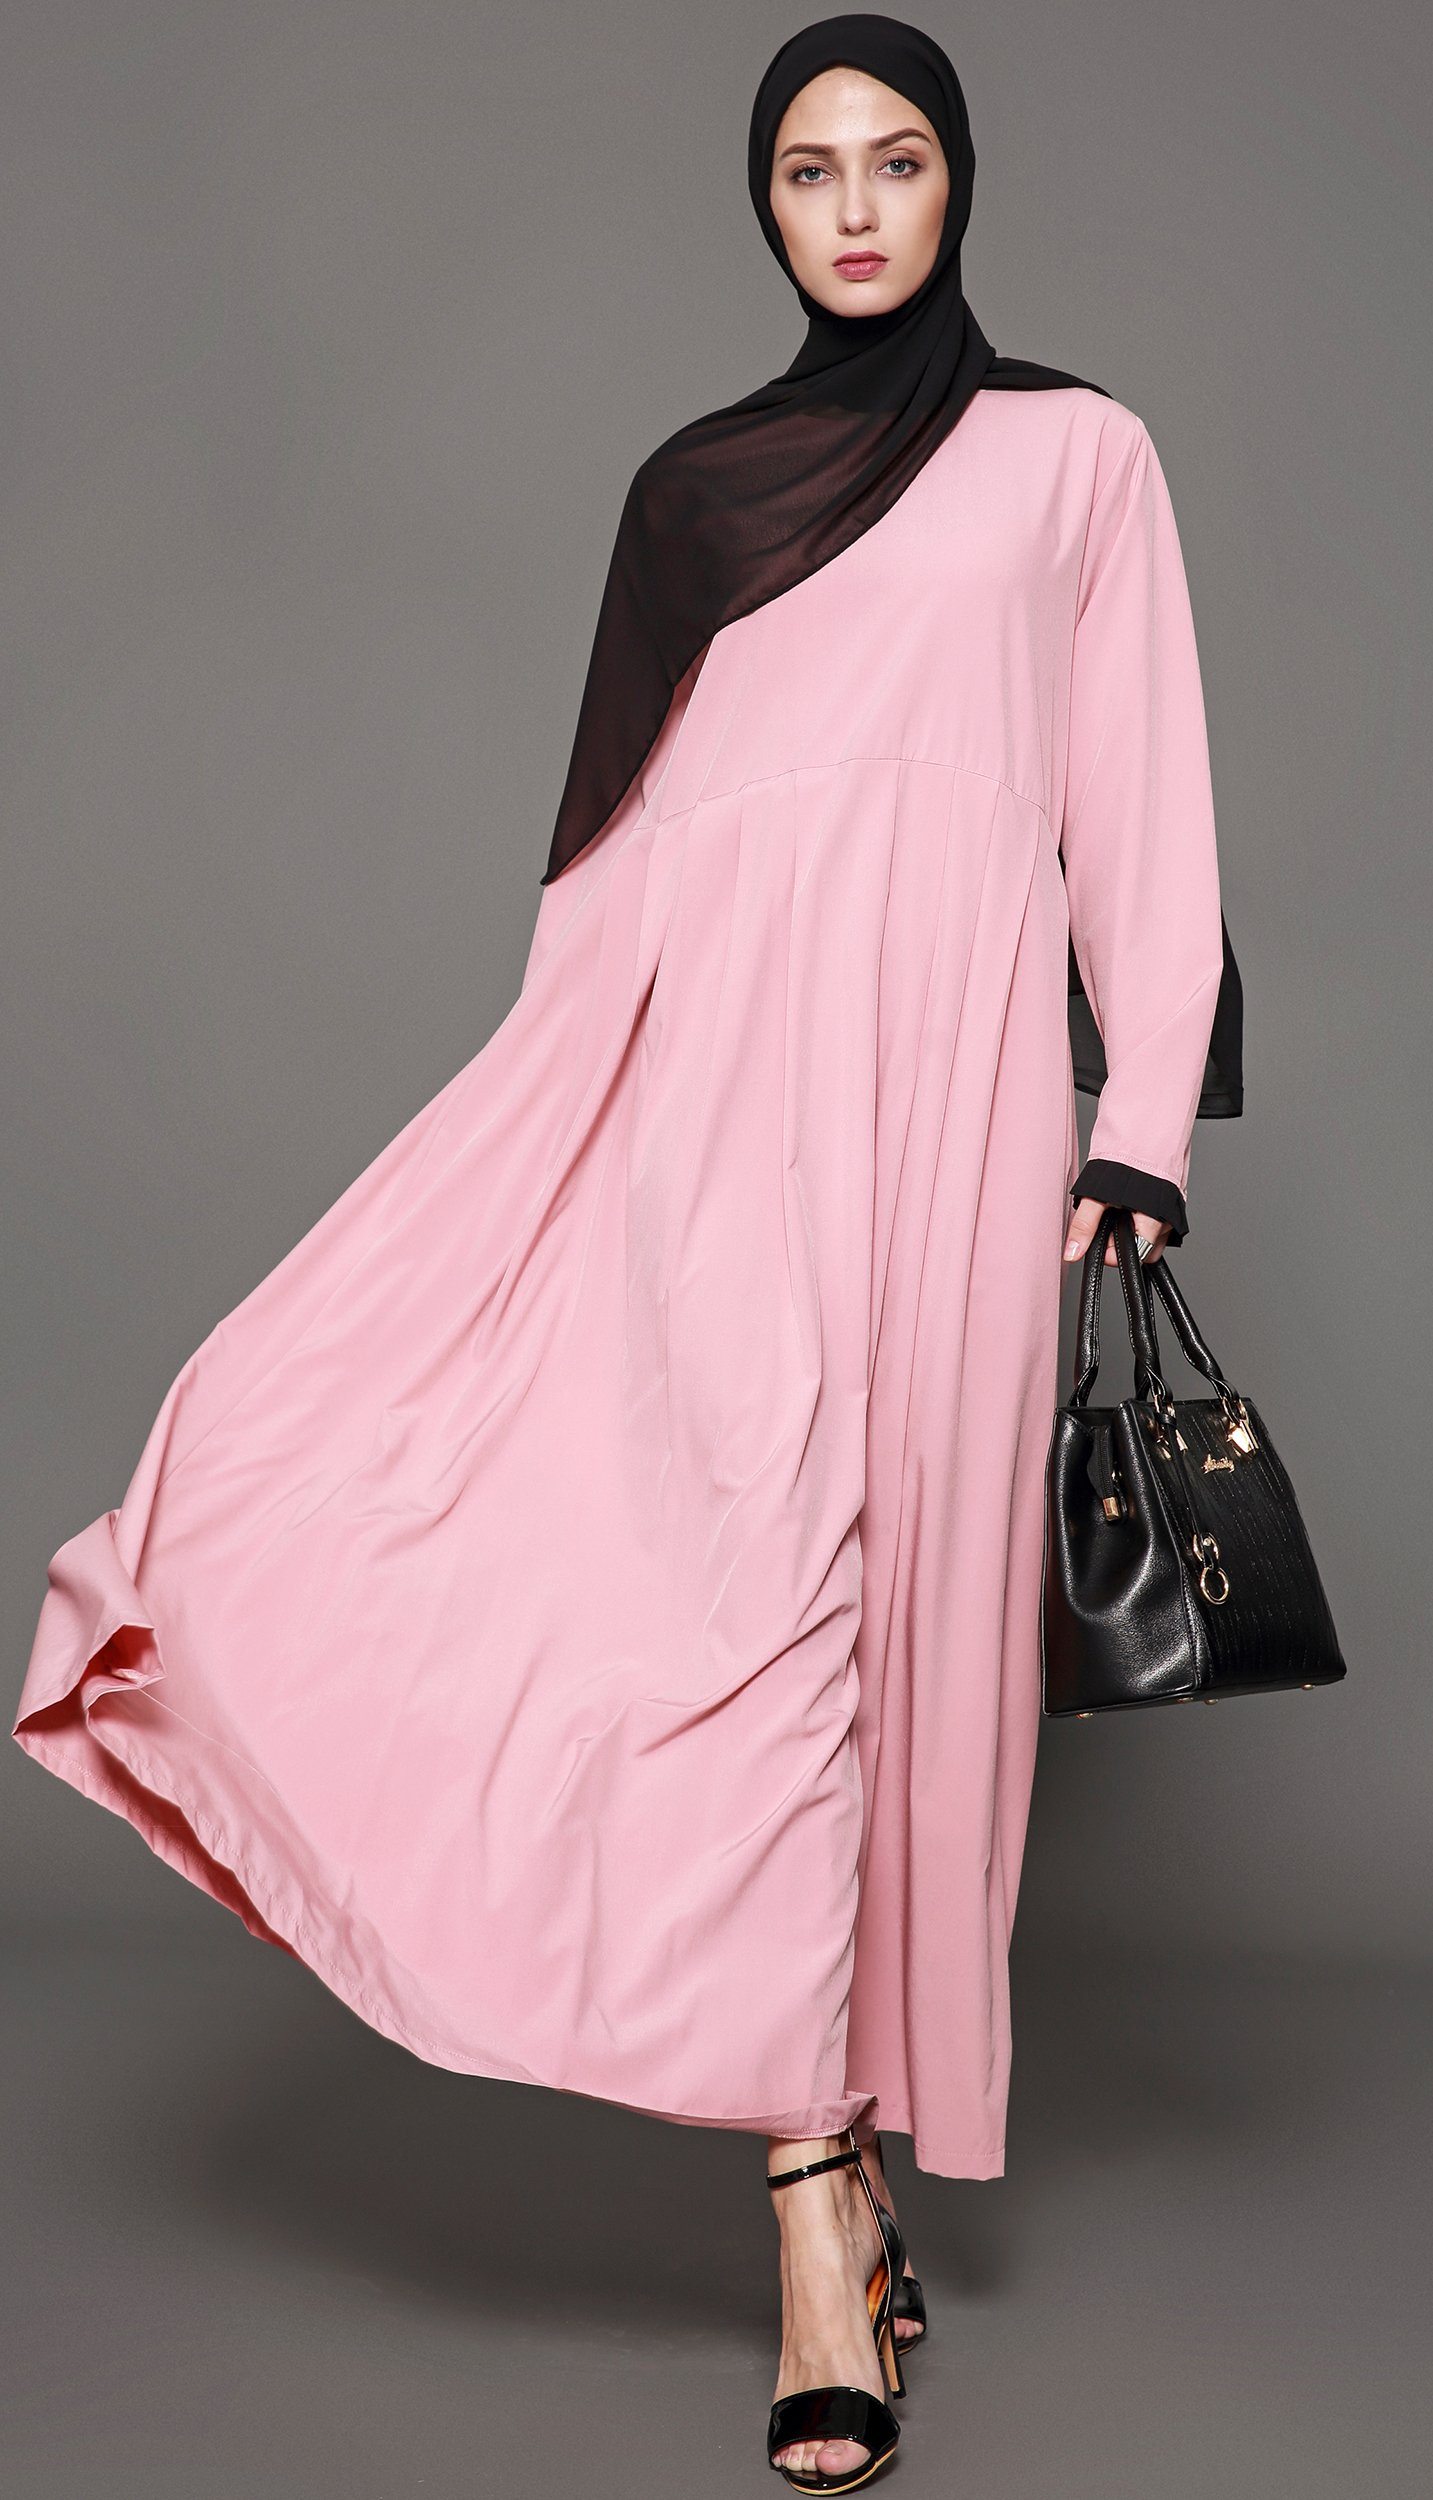 Ababalaya Women's Elegant Modest Muslim Full Length O-Neck Solid Pleated Runway Abaya S-4XL,Pink,Tag Size L = US Size 10-12 by Ababalaya (Image #4)